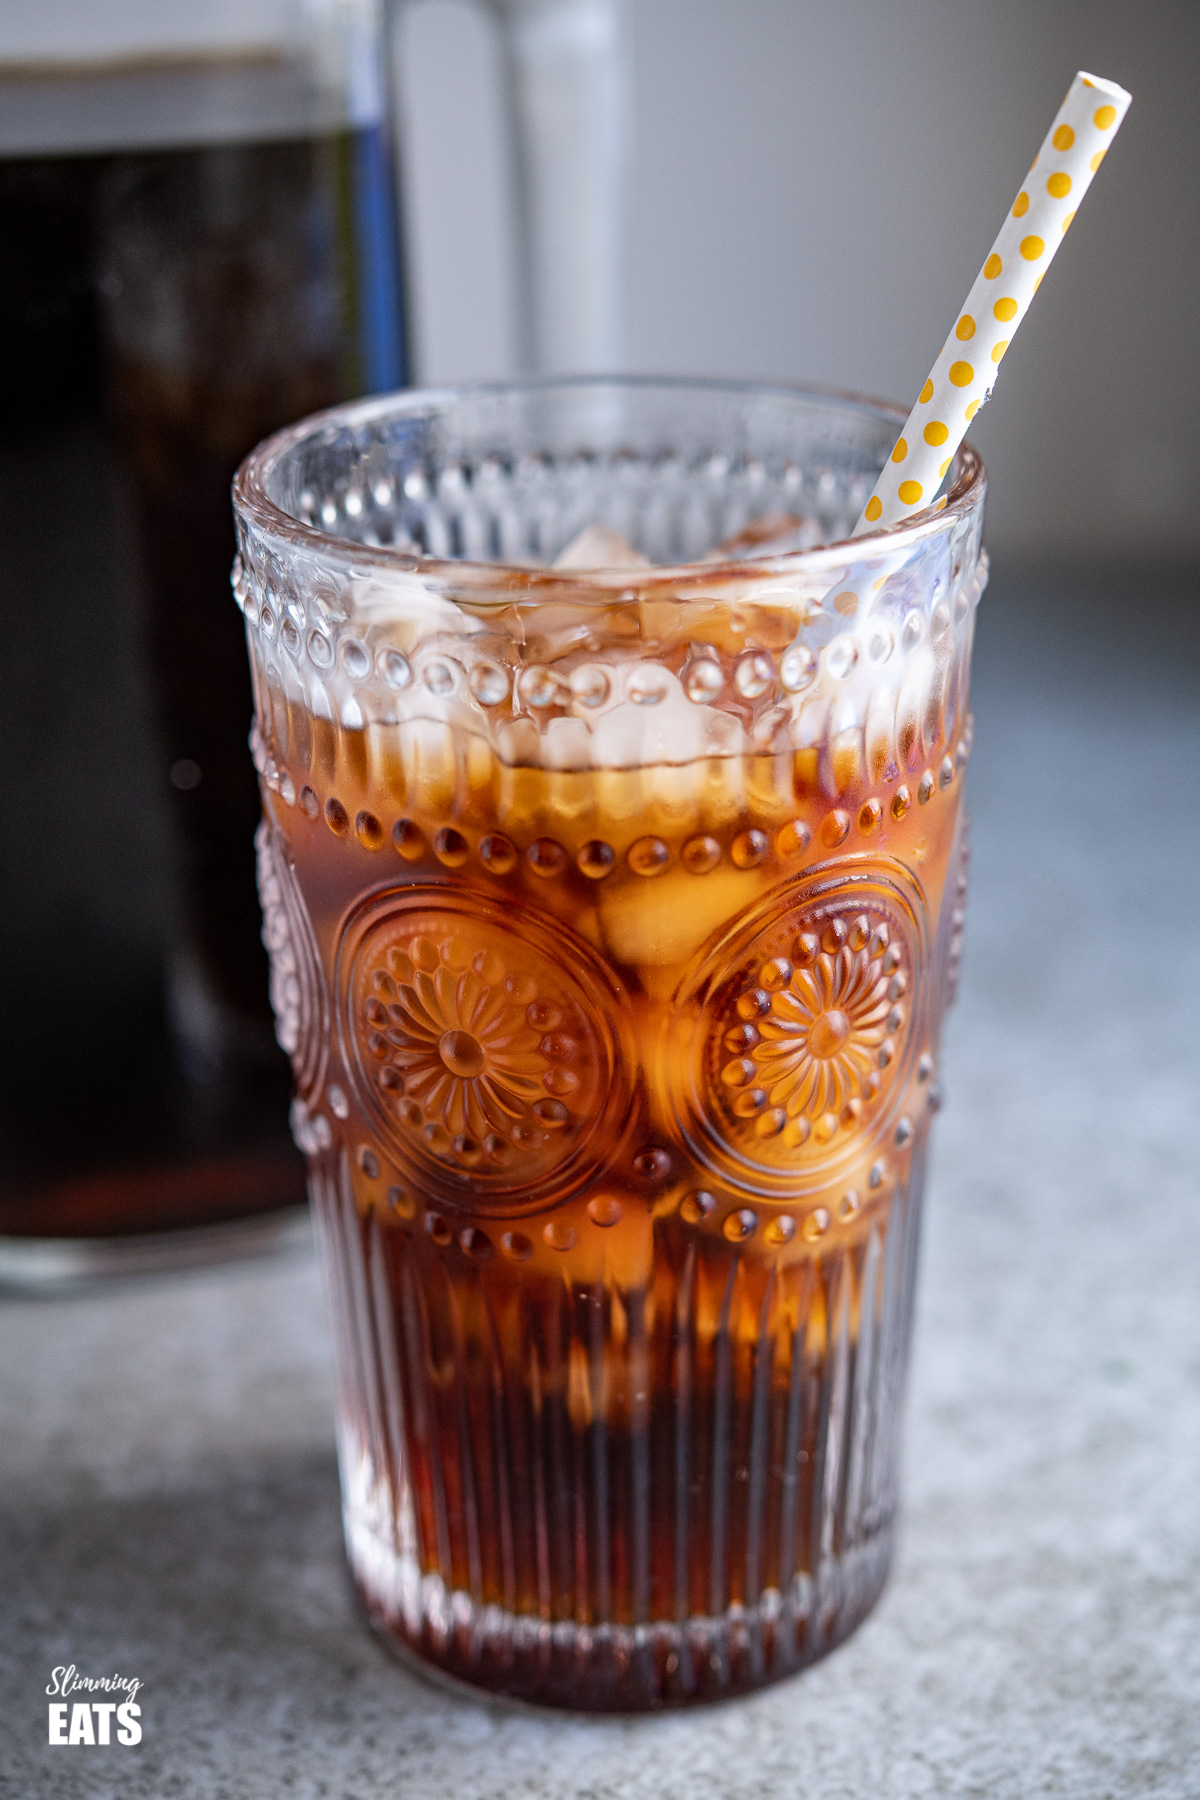 close up of cold brew coffee with ice in a glass with yellow spotted white straw, jug of cold brew in background